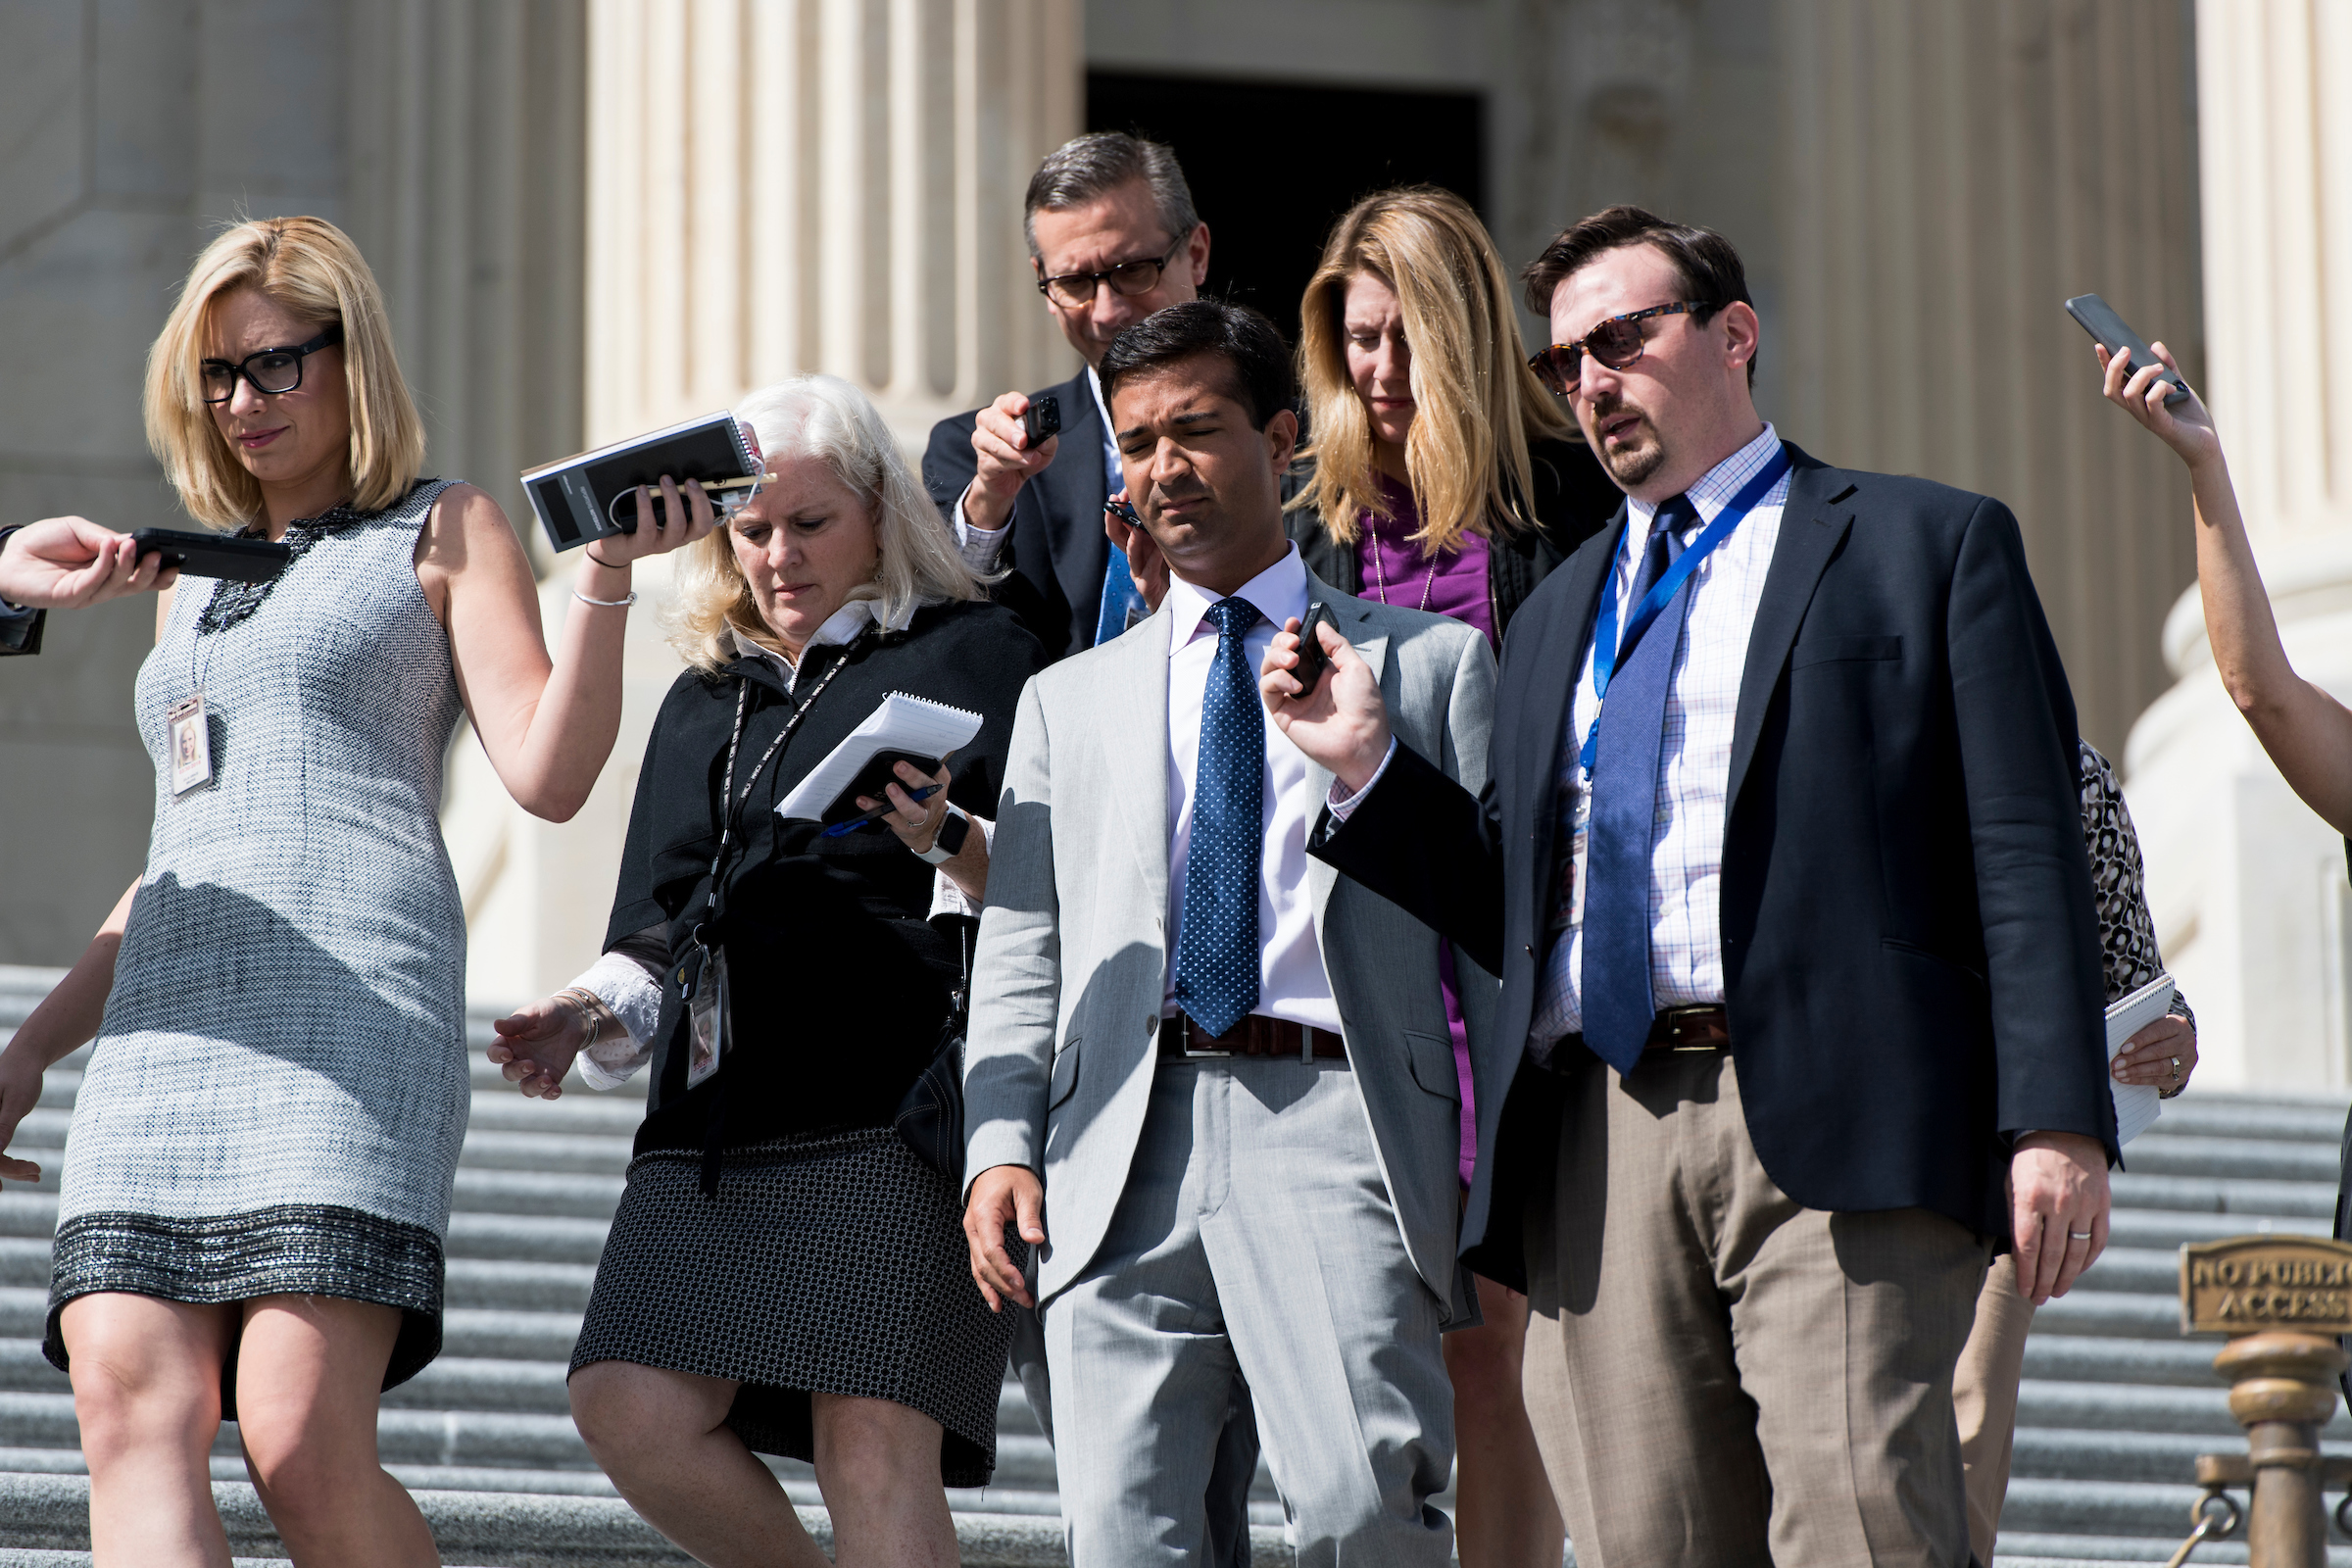 UNITED STATES - OCTOBER 5: Rep. Carlos Curbelo, R-Fla., speaks with reporters as he walks down the House steps after the last votes of the week on Thursday, Oct. 5, 2017. (Photo By Bill Clark/CQ Roll Call)